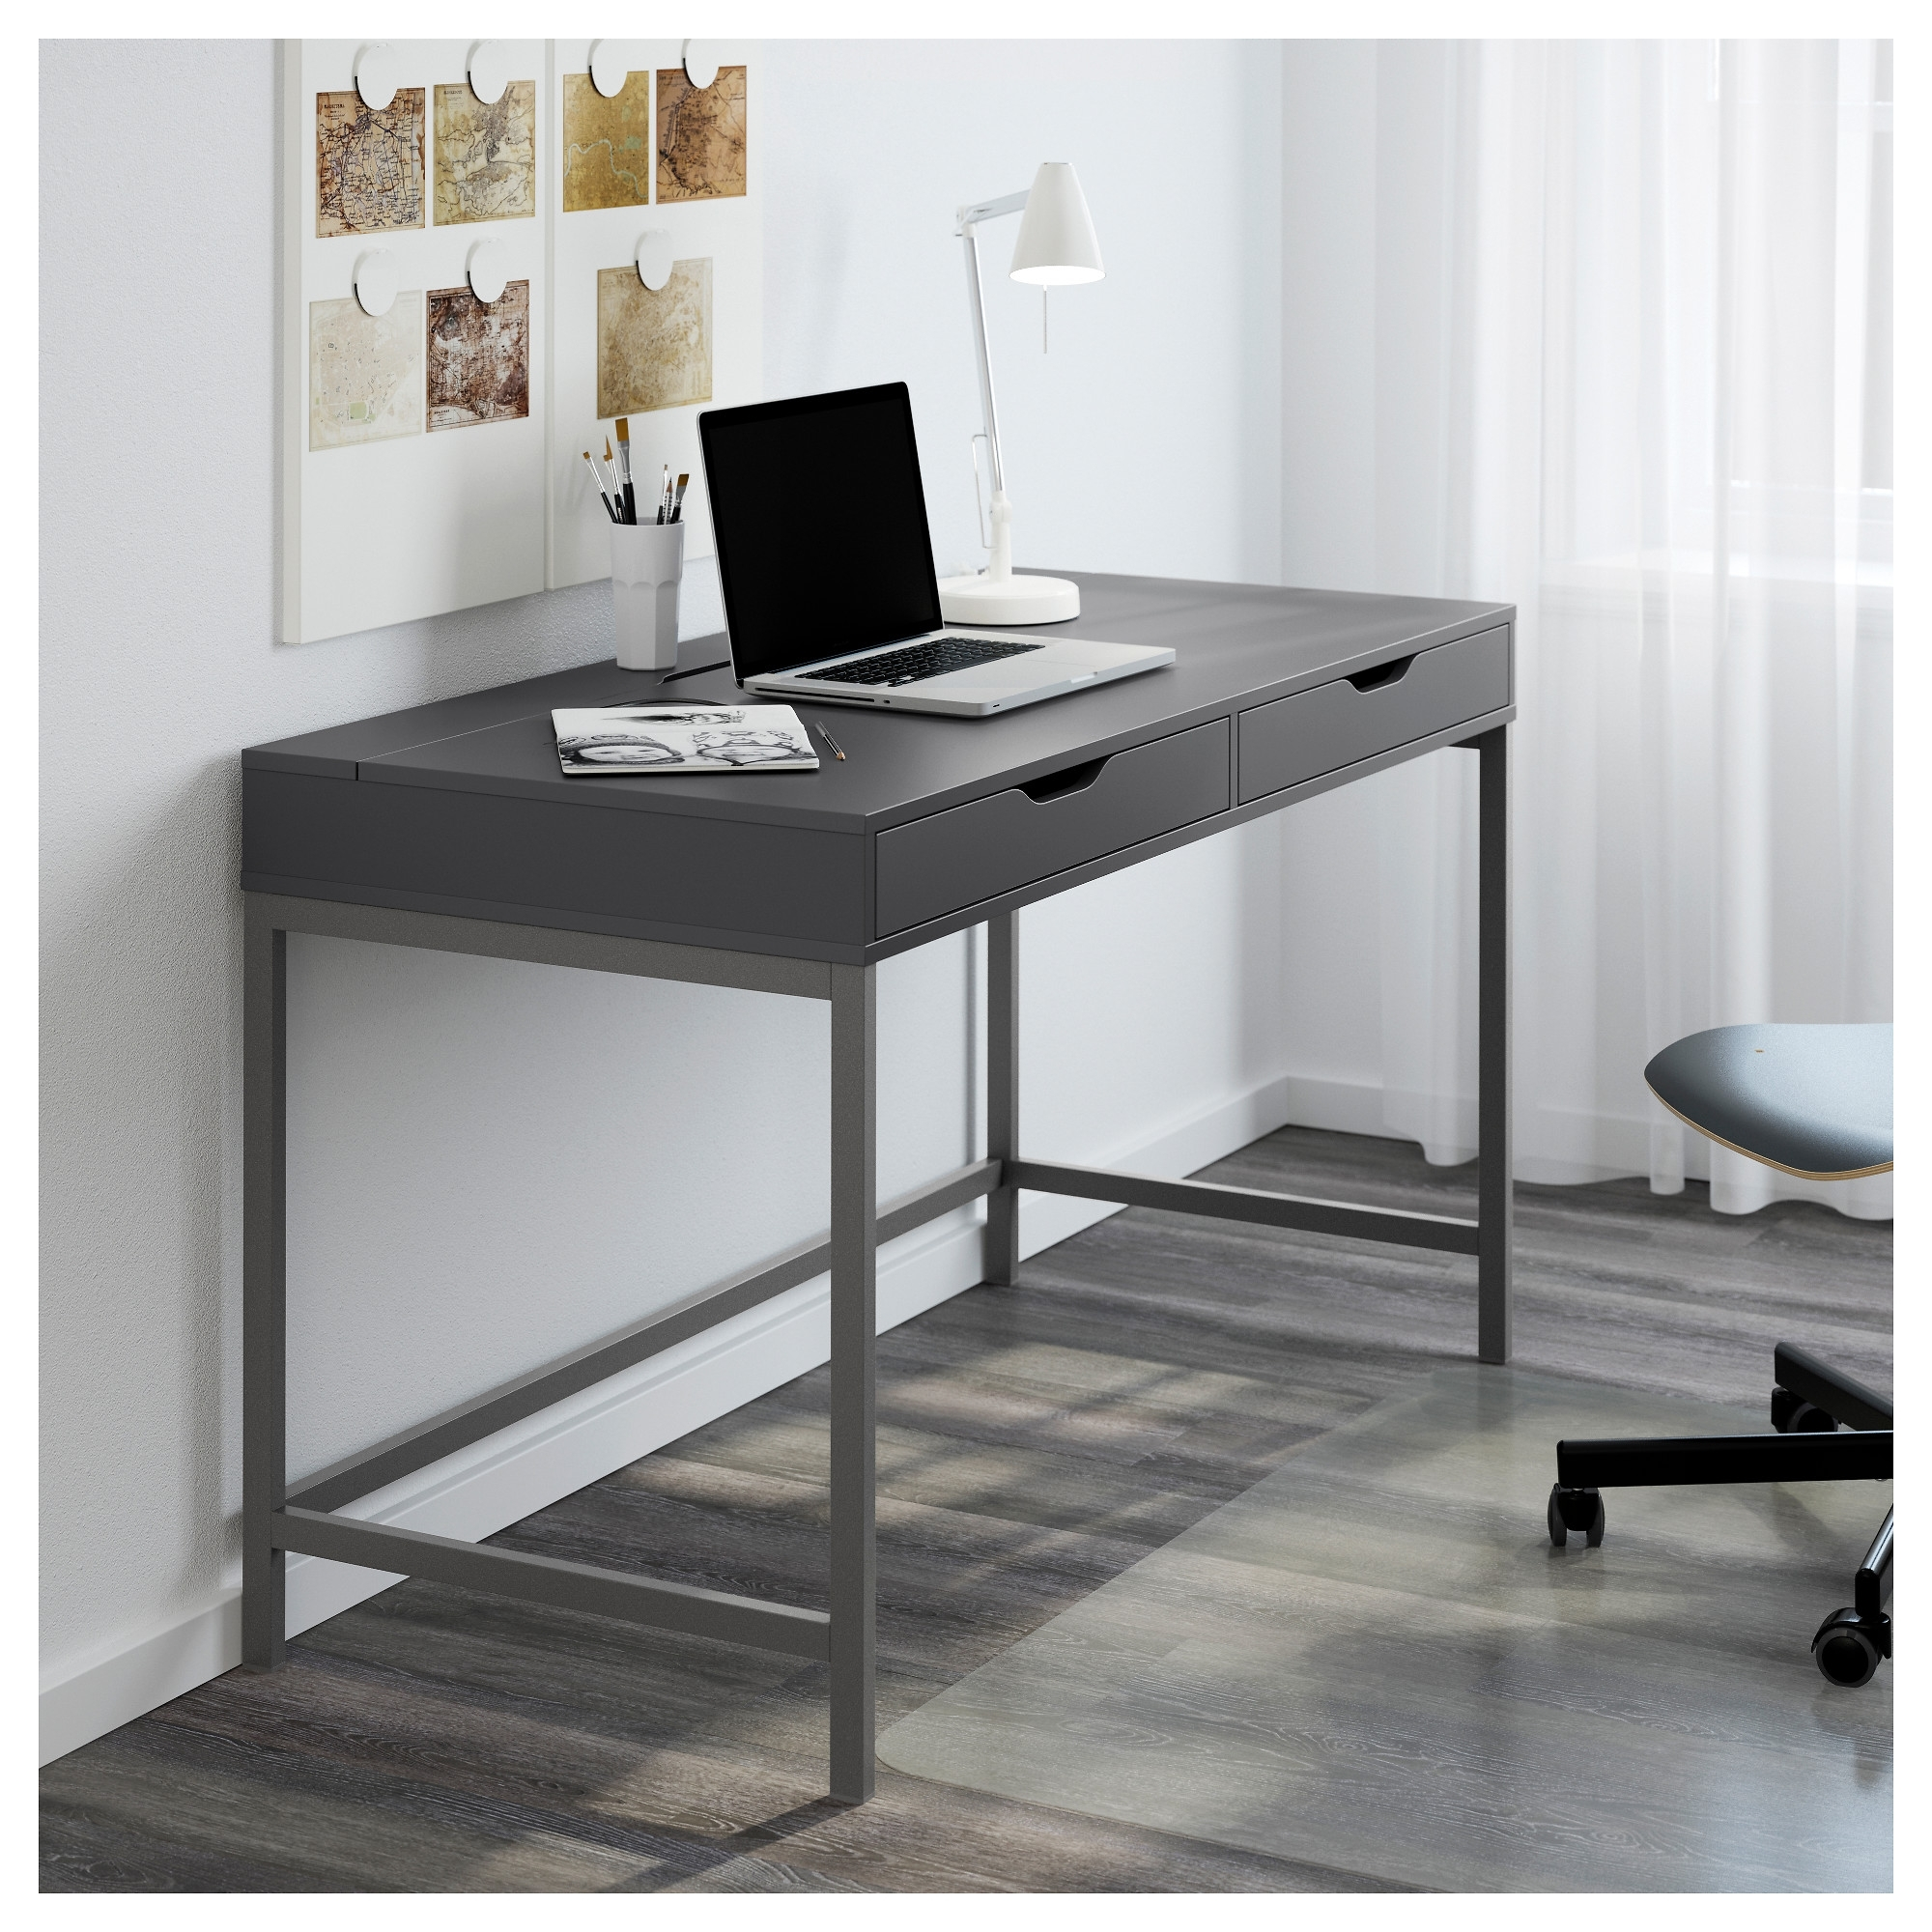 Alex Desk – White – Ikea Intended For Preferred Computer Desks At Ikea (View 9 of 20)